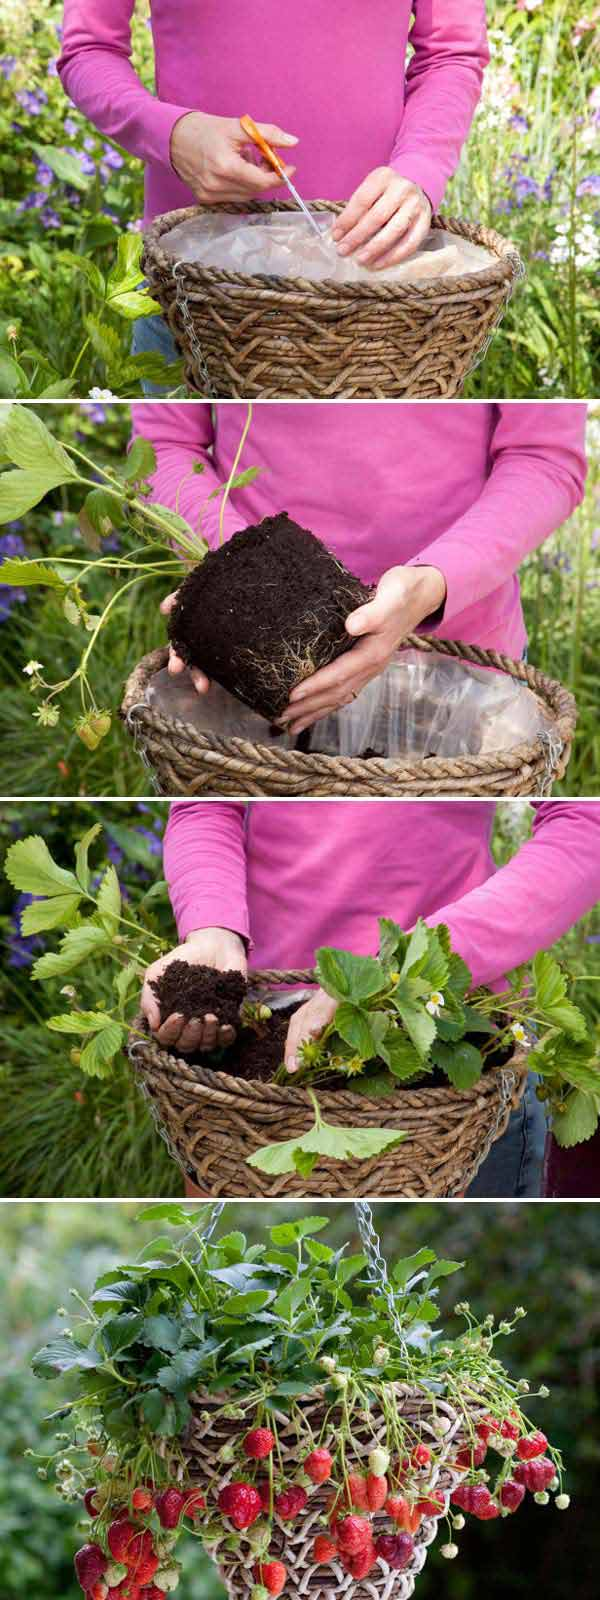 Growing_Strawberries_in_Baskets